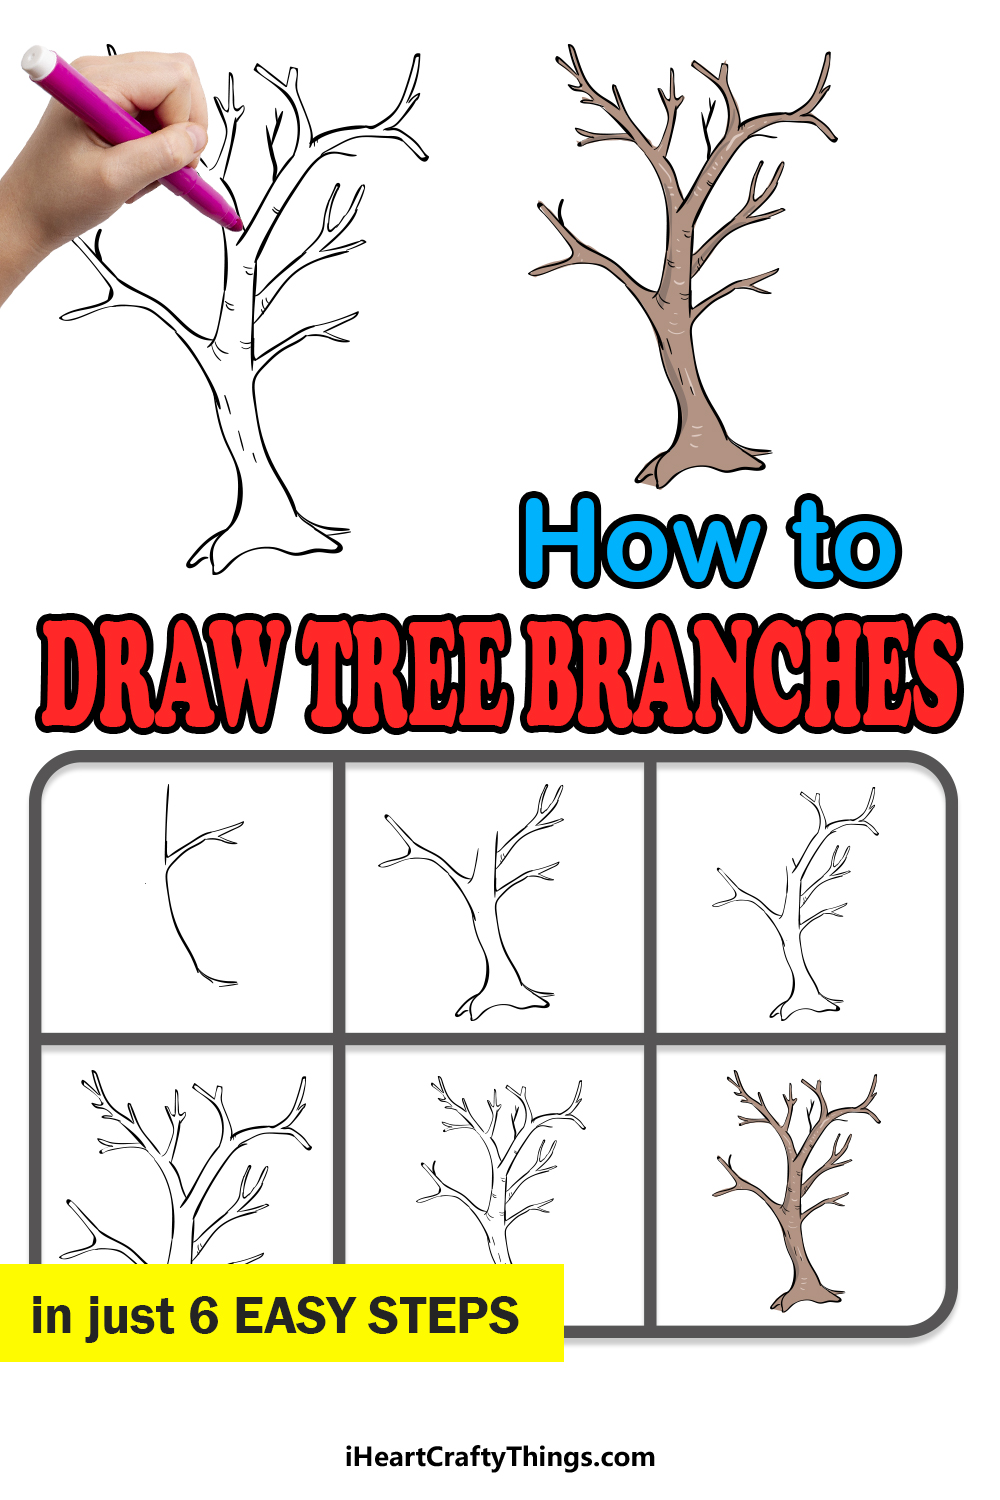 how to draw tree branches in 6 easy steps